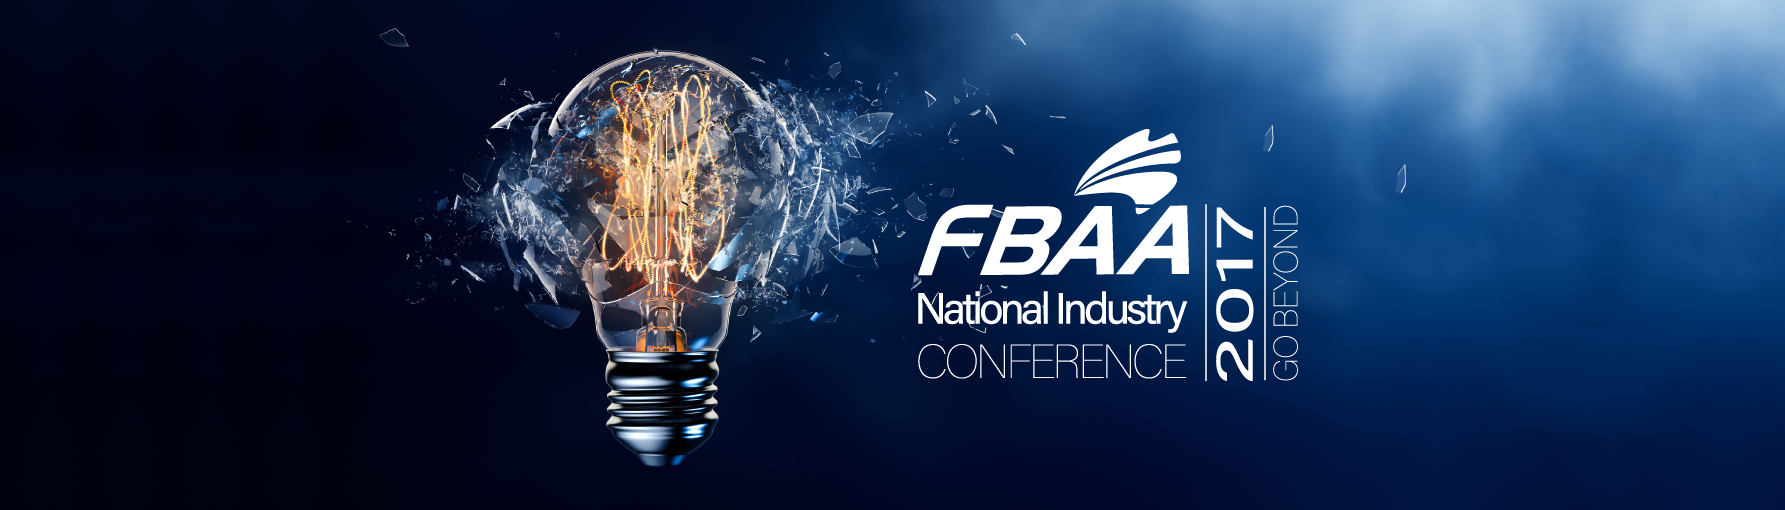 FBAA 2017 National Industry Conference - Go Beyond